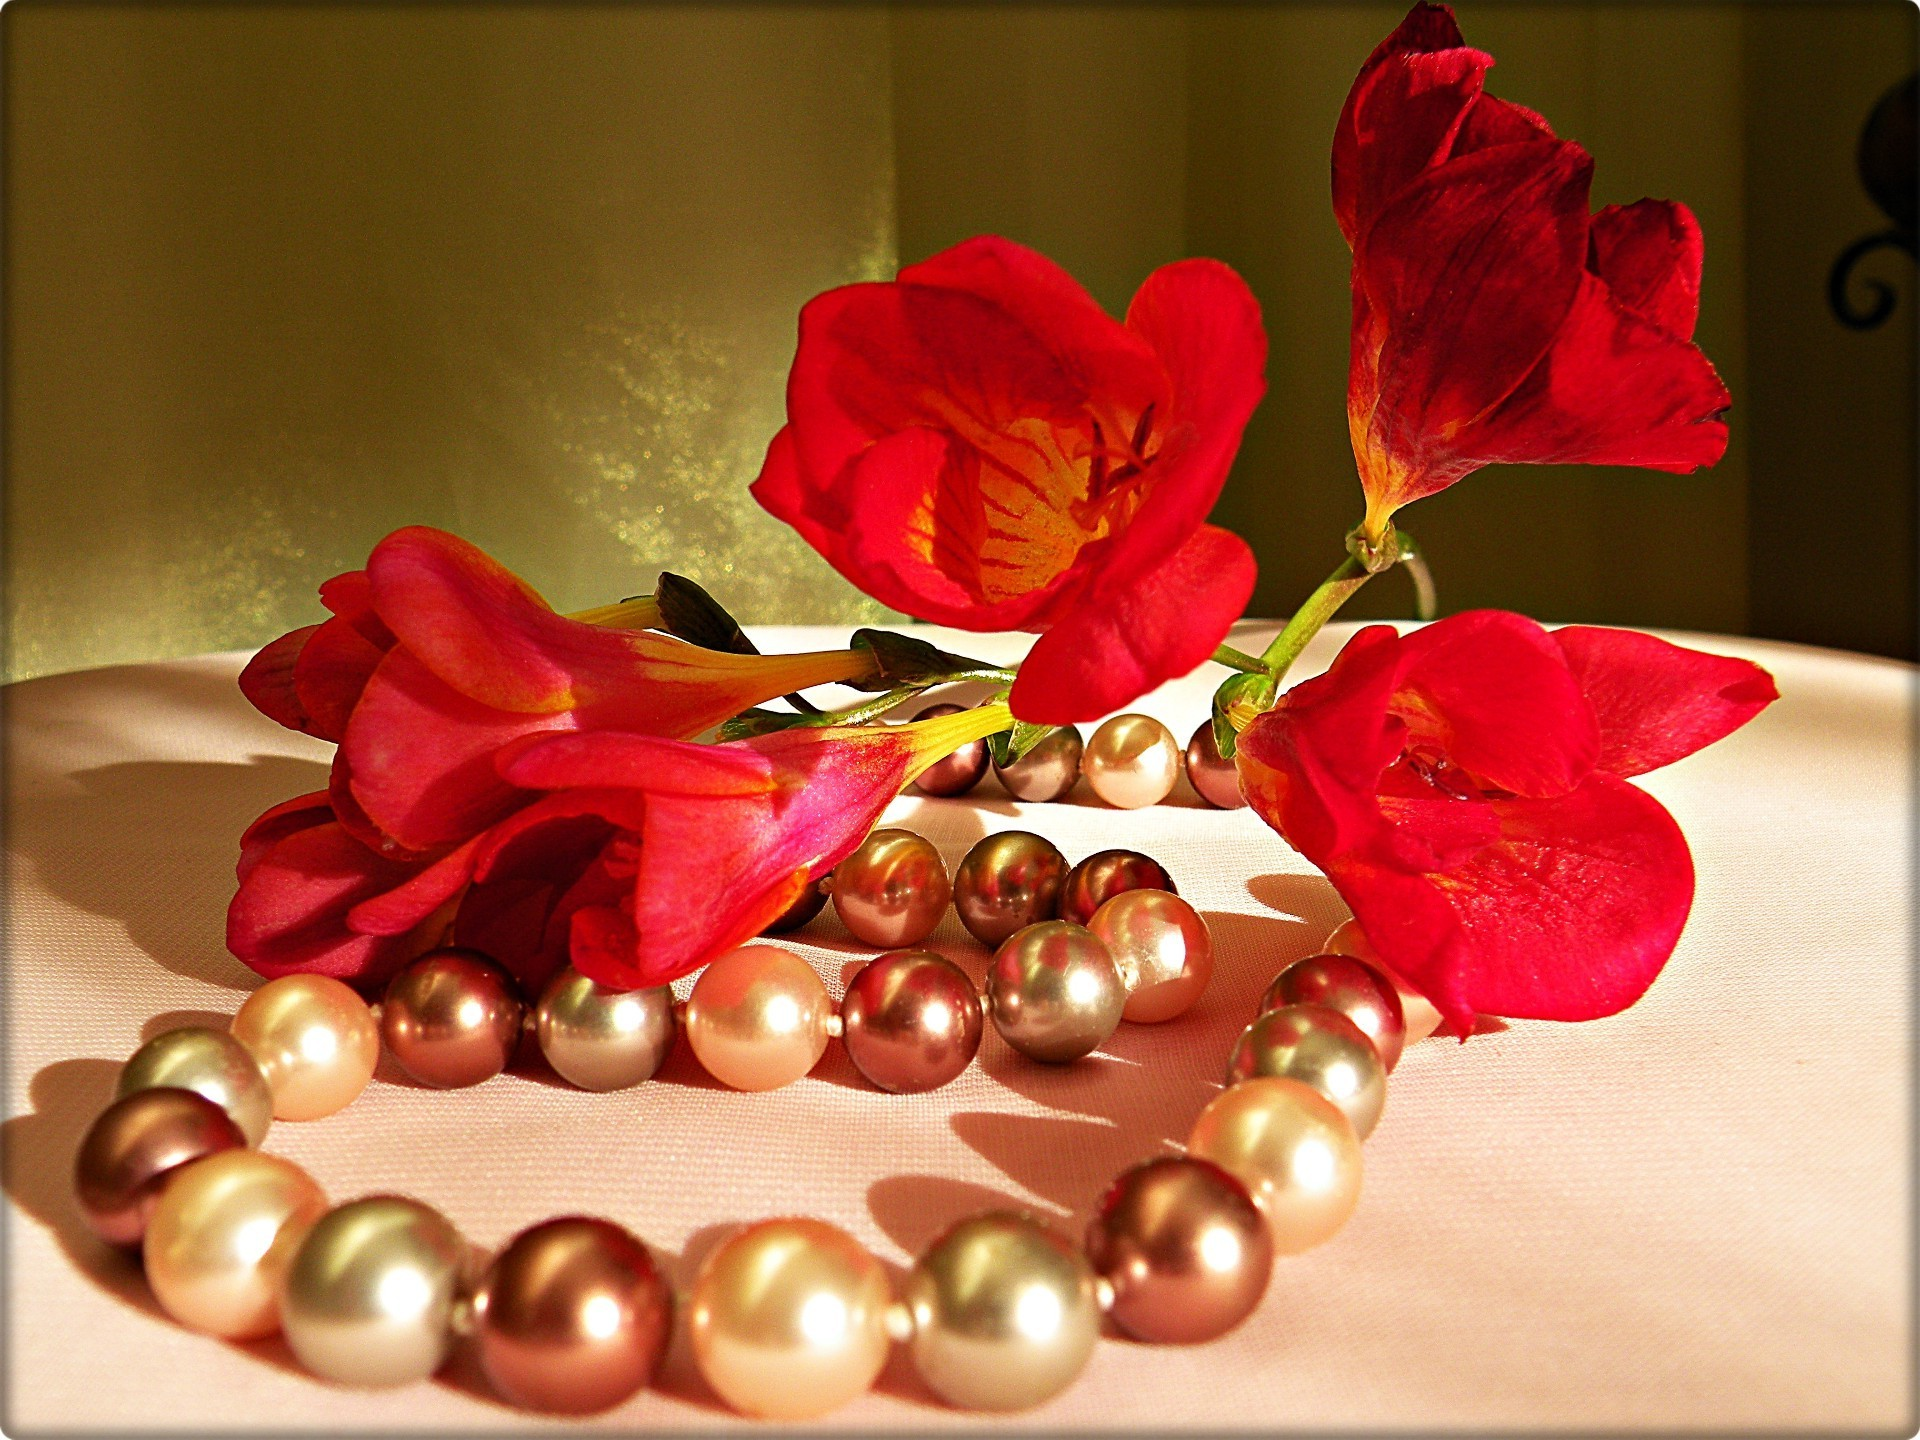 Red freesia and pearls